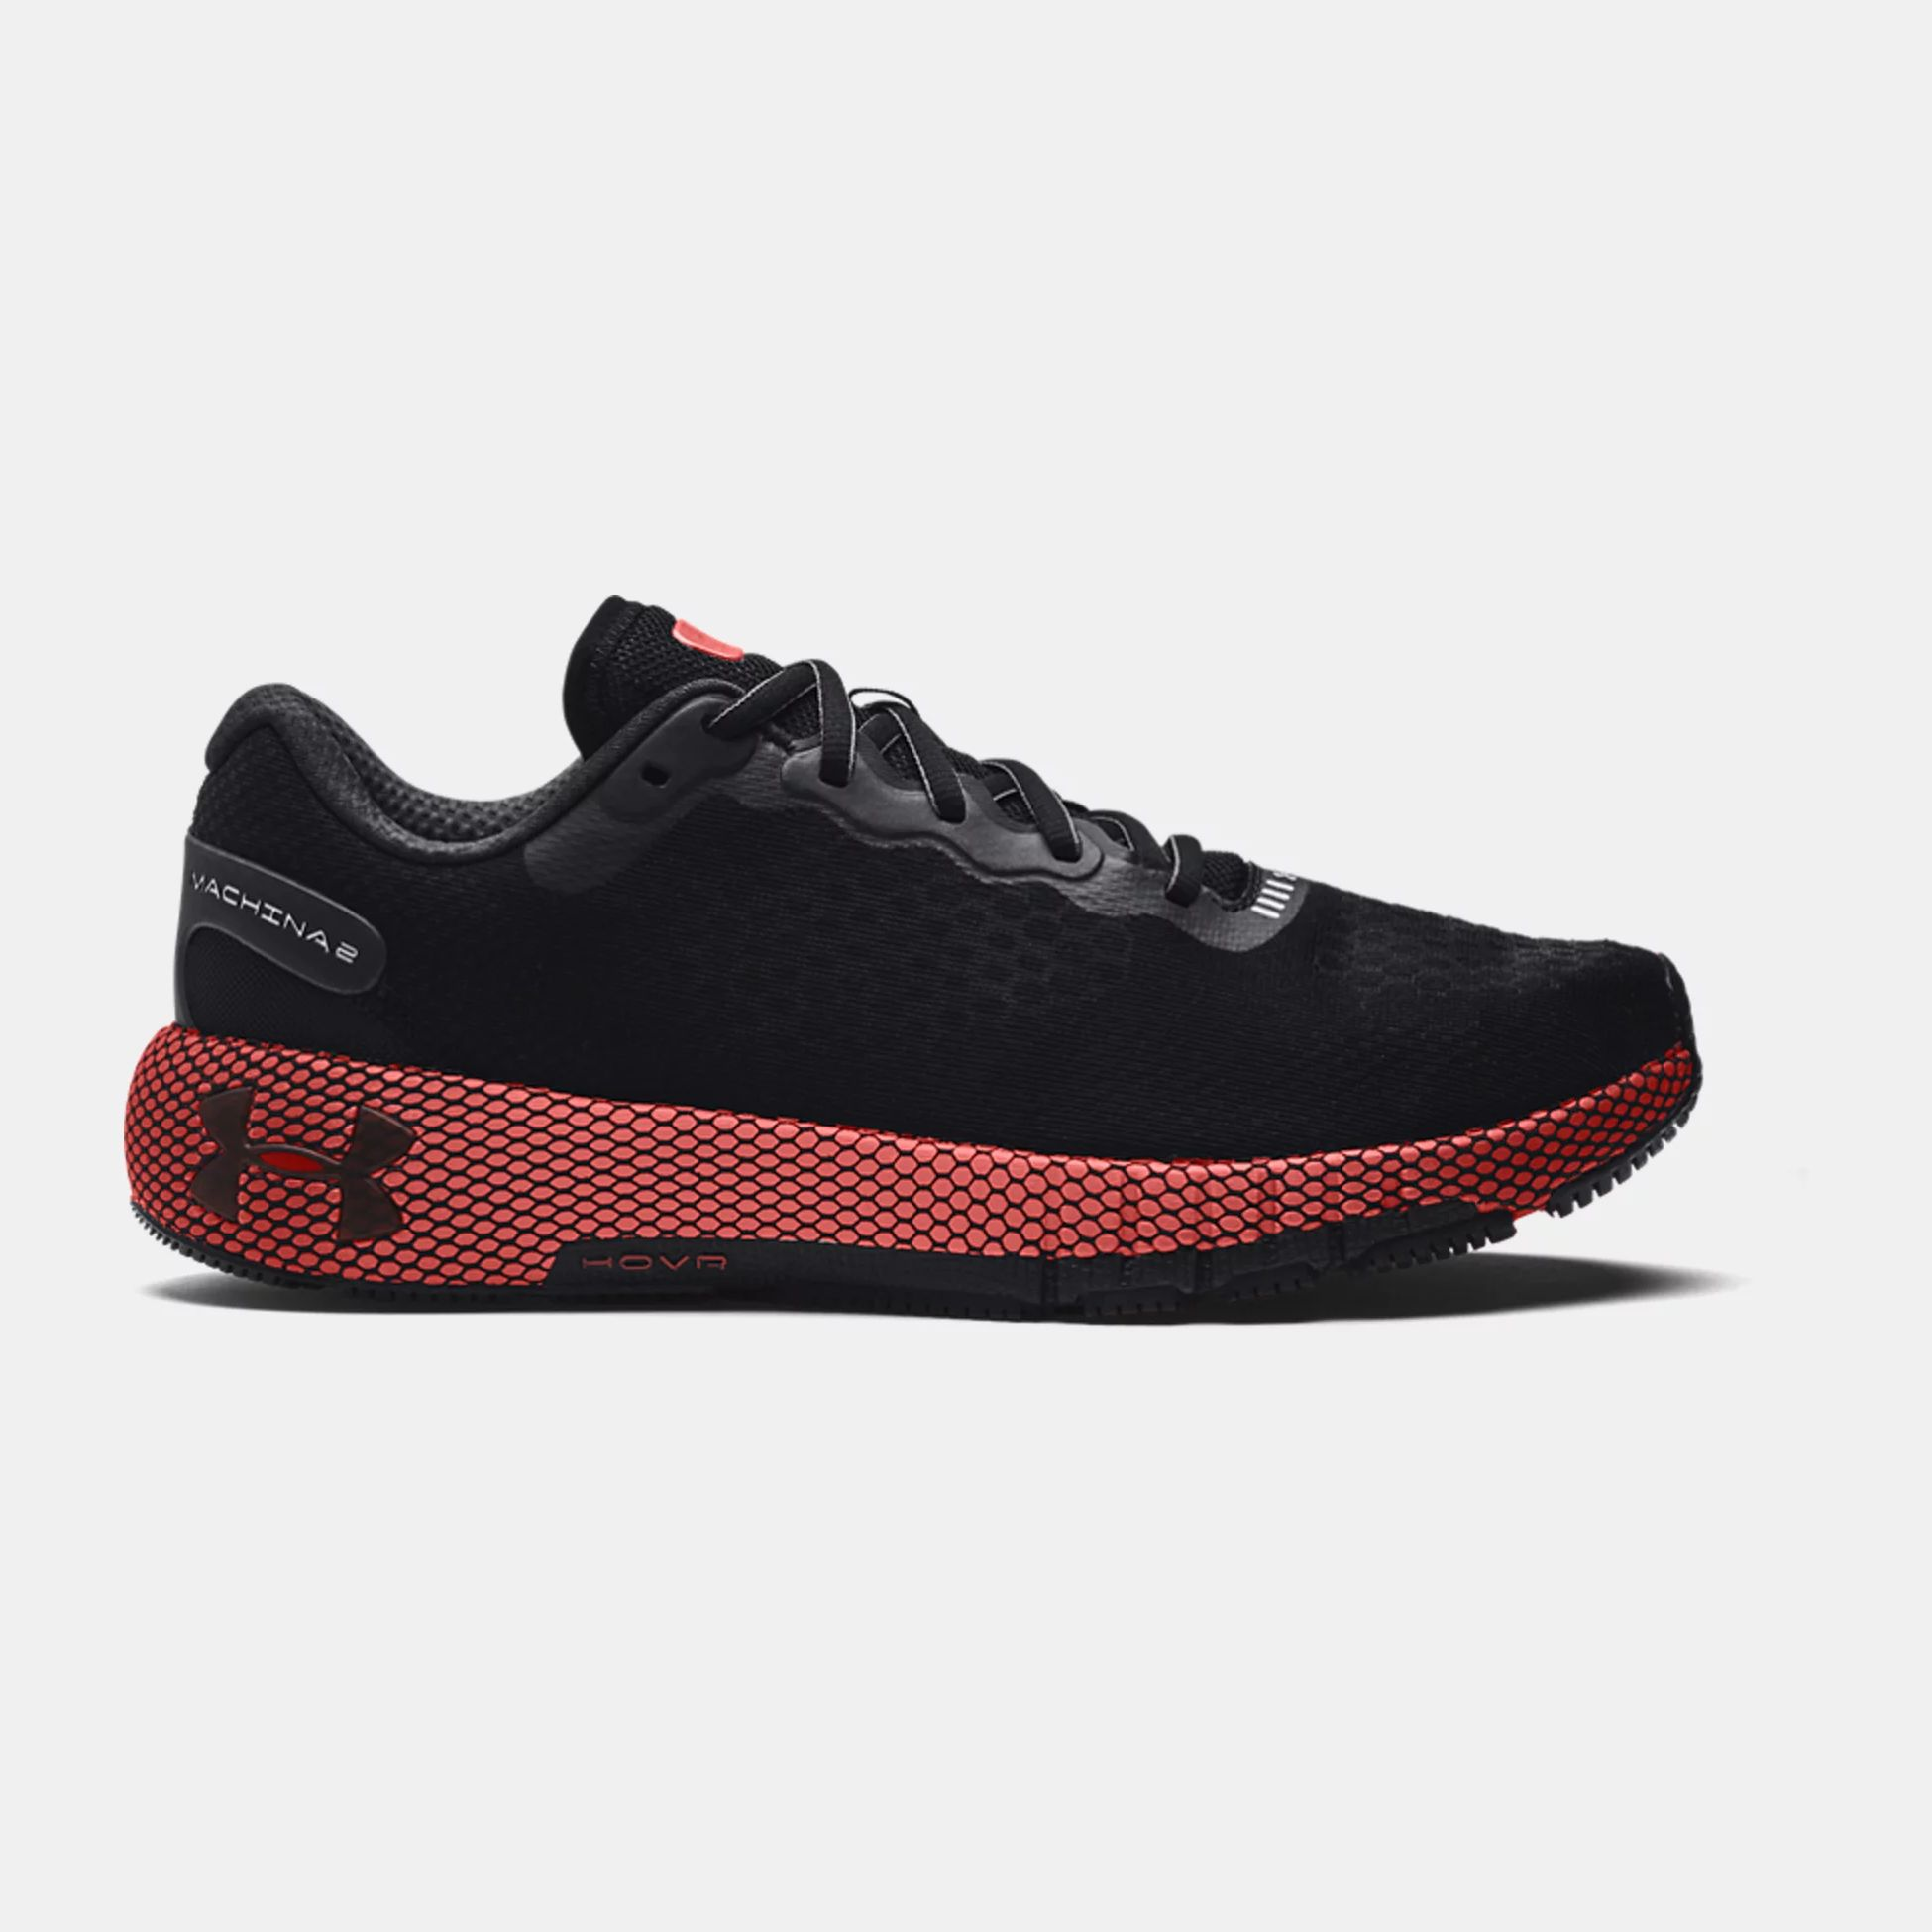 Shoes -  under armour UA HOVR Machina 2 Colorshift Running Shoes